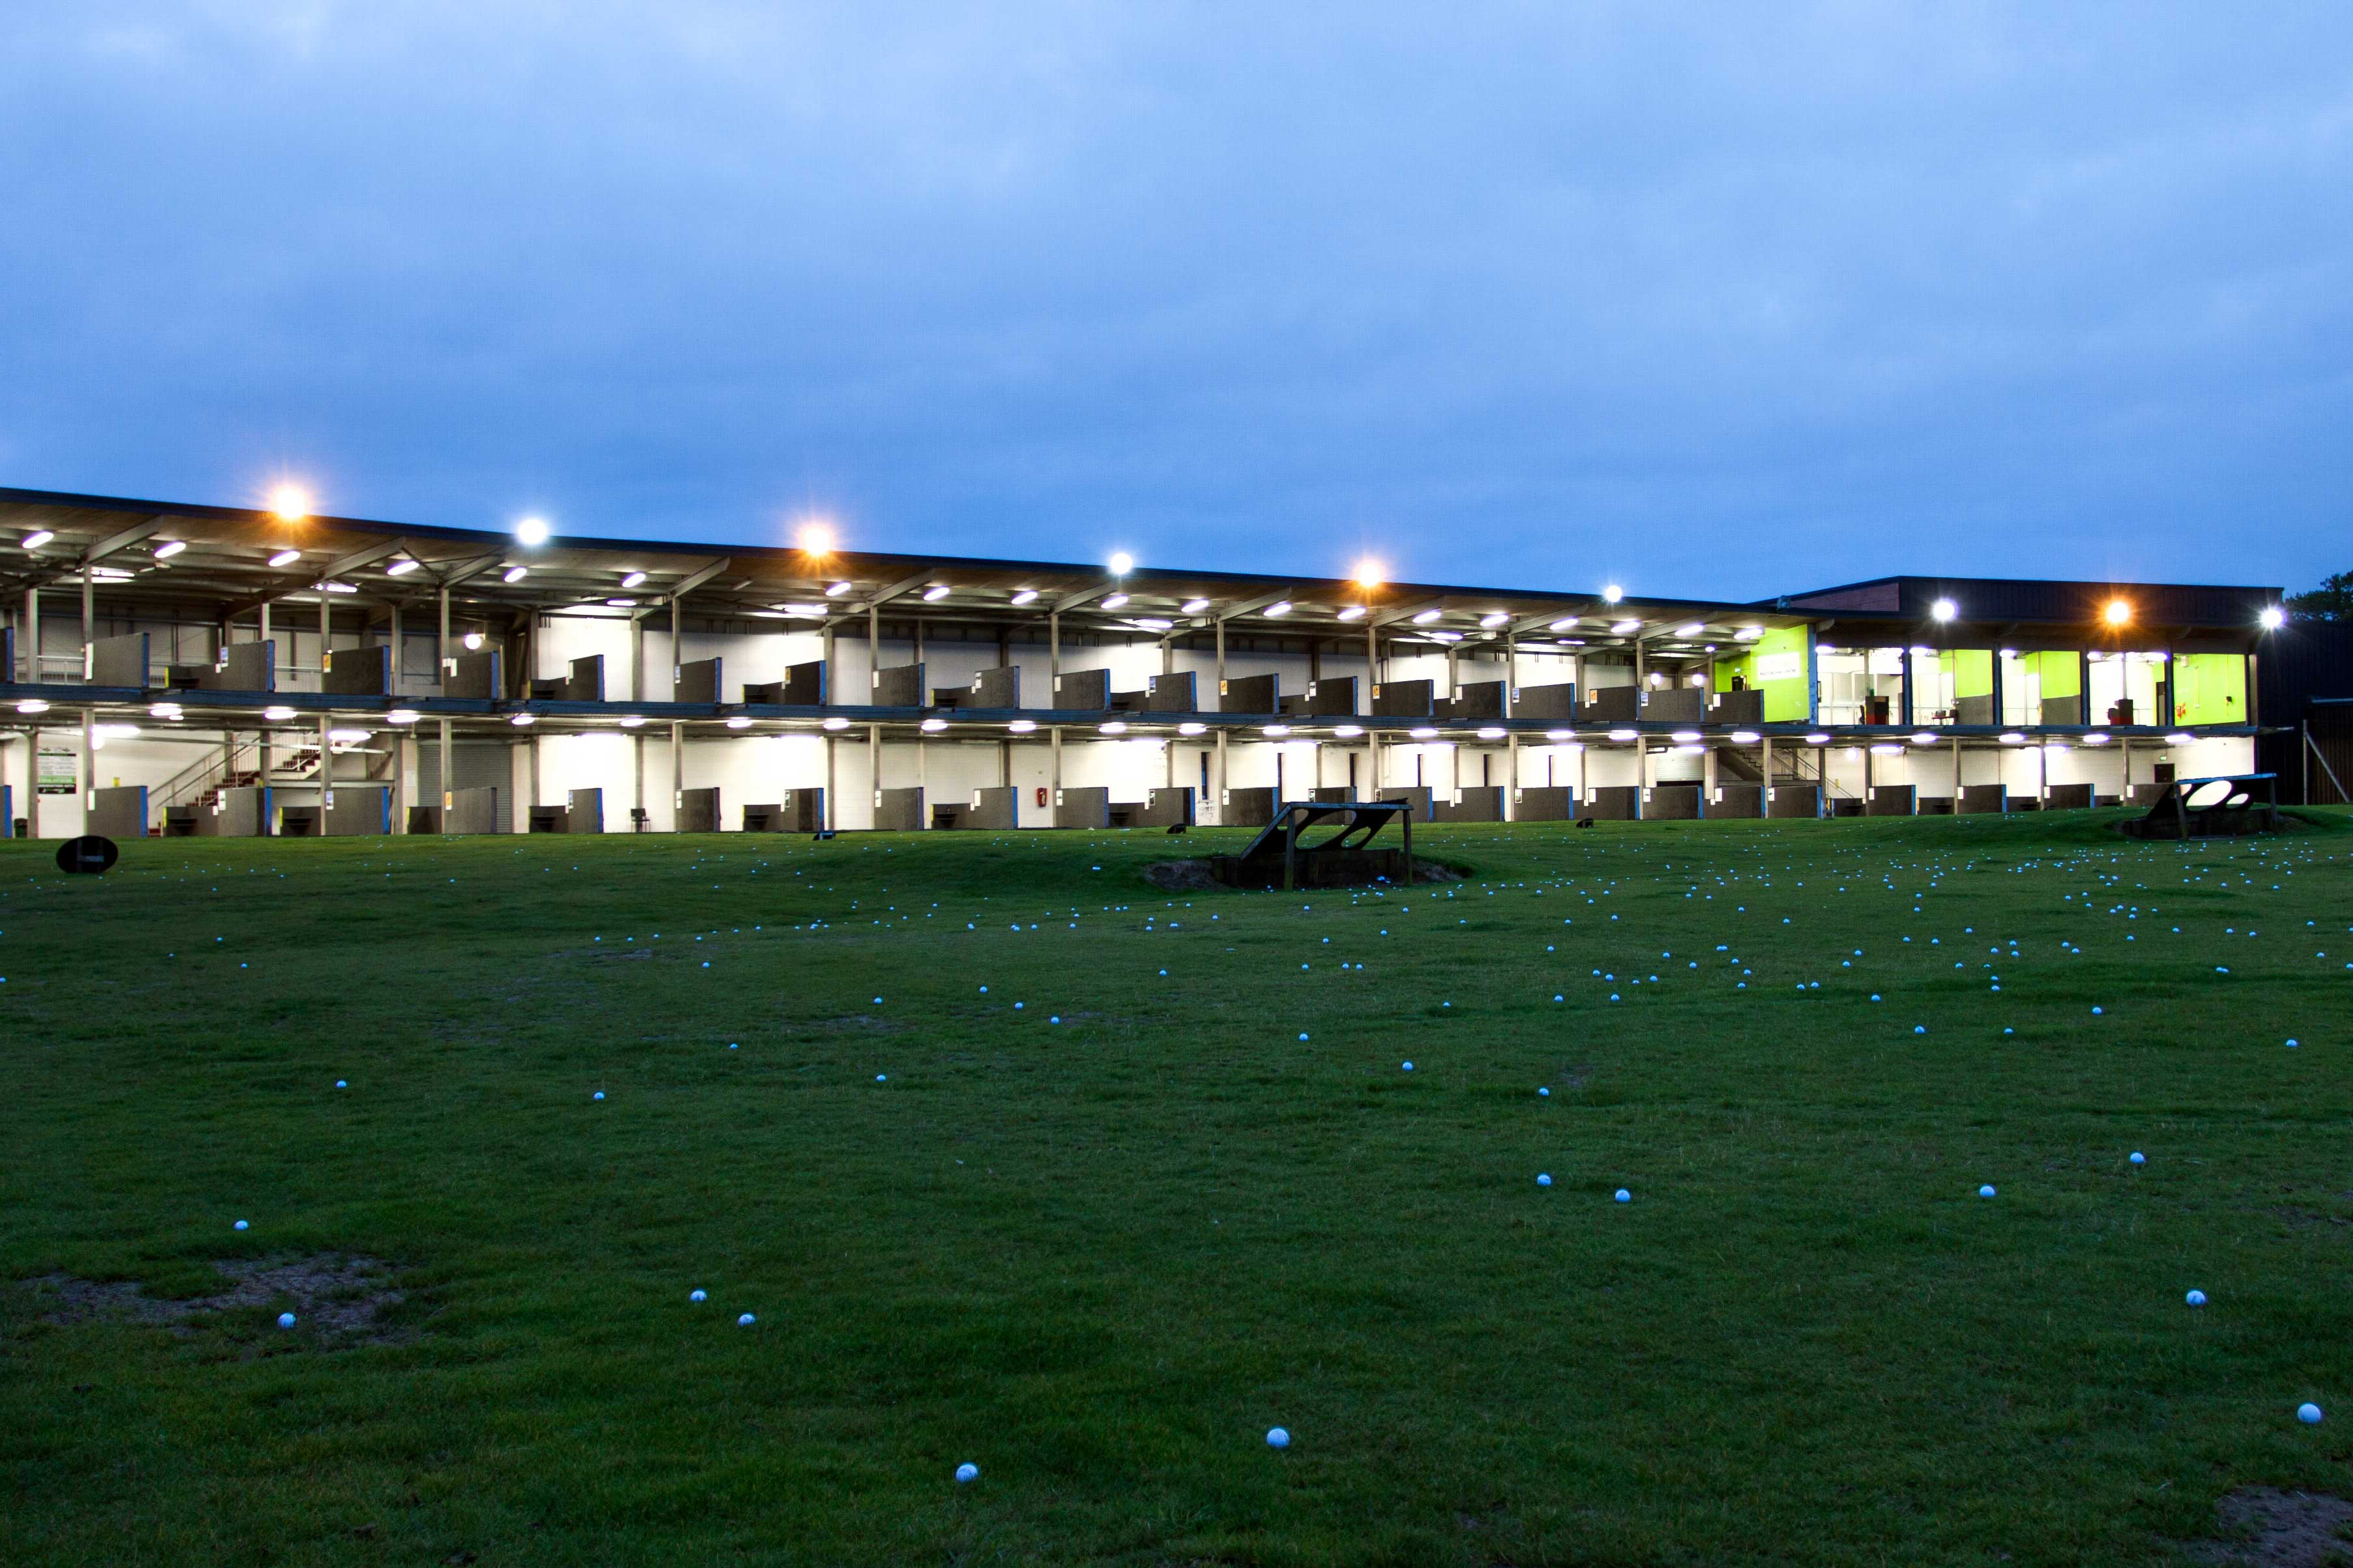 56 bay driving range at Playsport golf East Kilbride